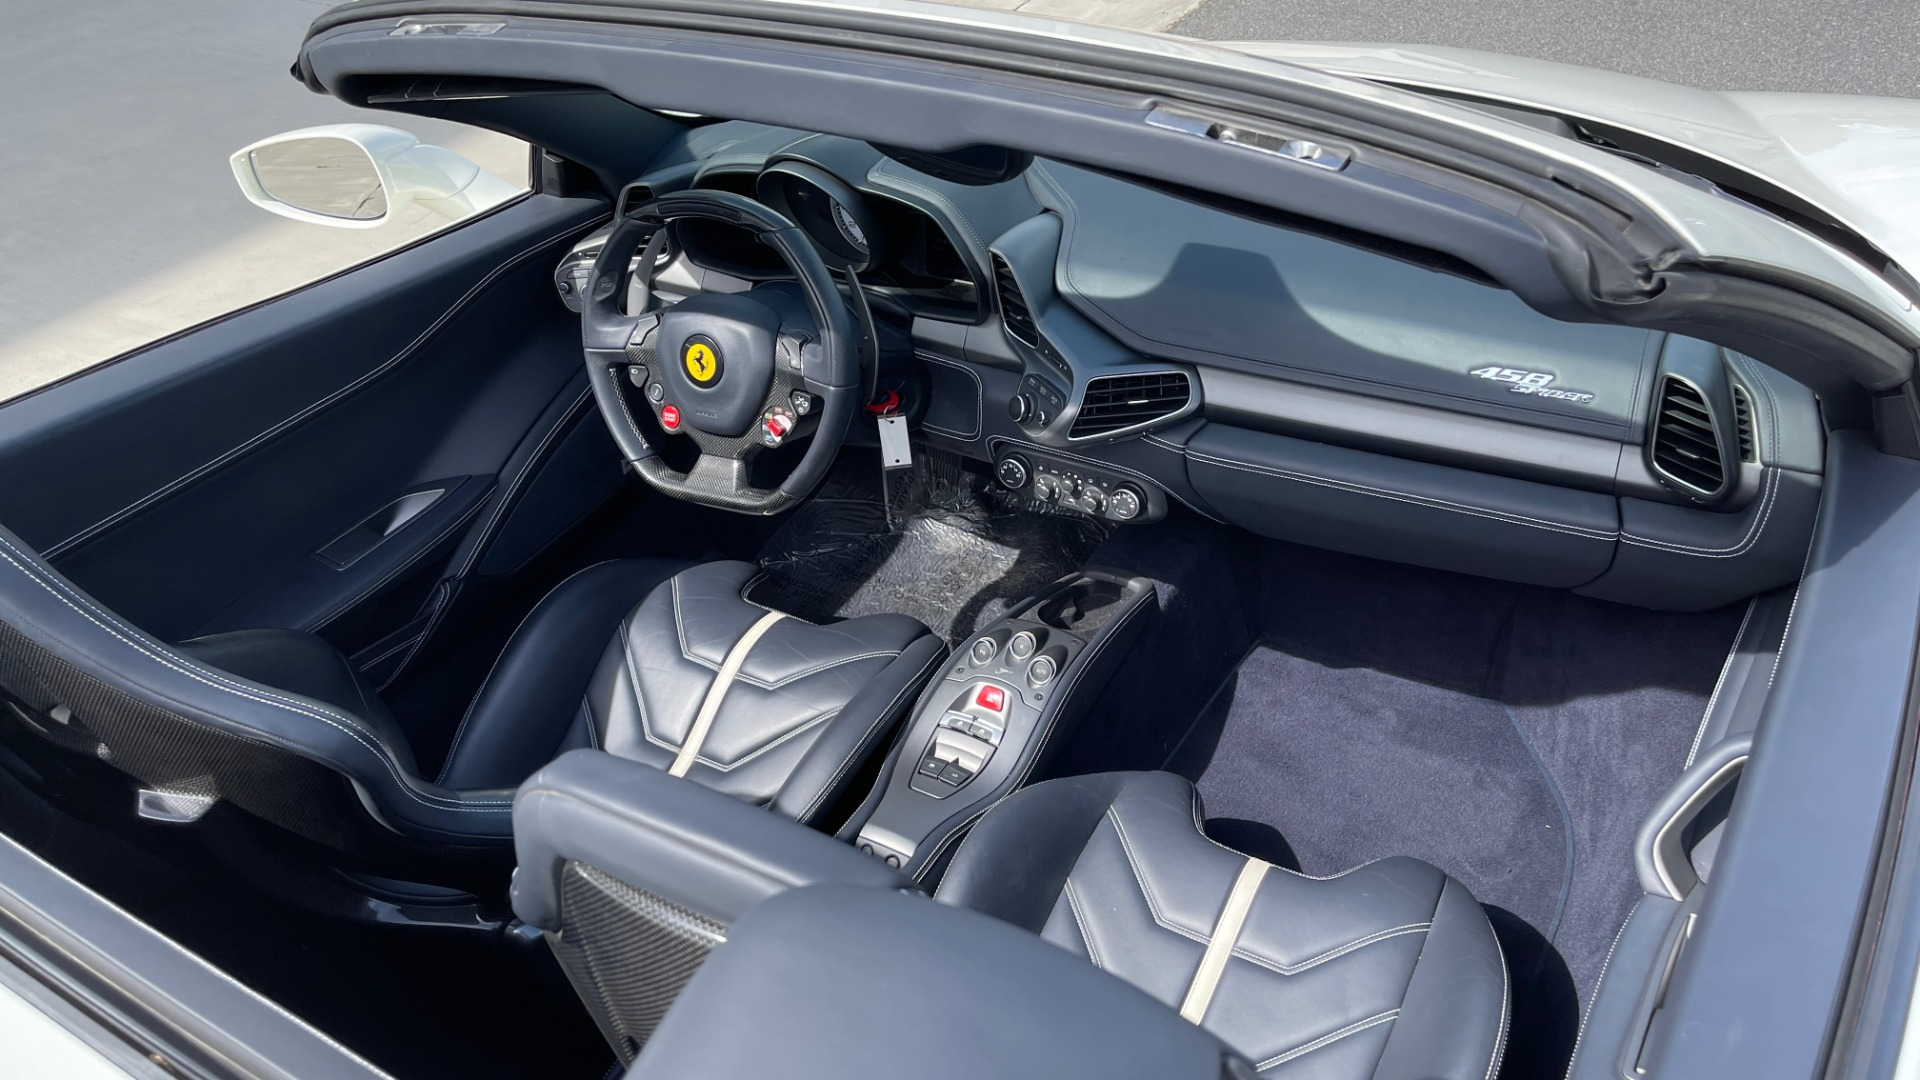 Used 2014 Ferrari 458 ITALIA SPIDER 570HP / F1 AUTO / CF SEATS / CARBON BRAKES / REARVIEW for sale $249,999 at Formula Imports in Charlotte NC 28227 46